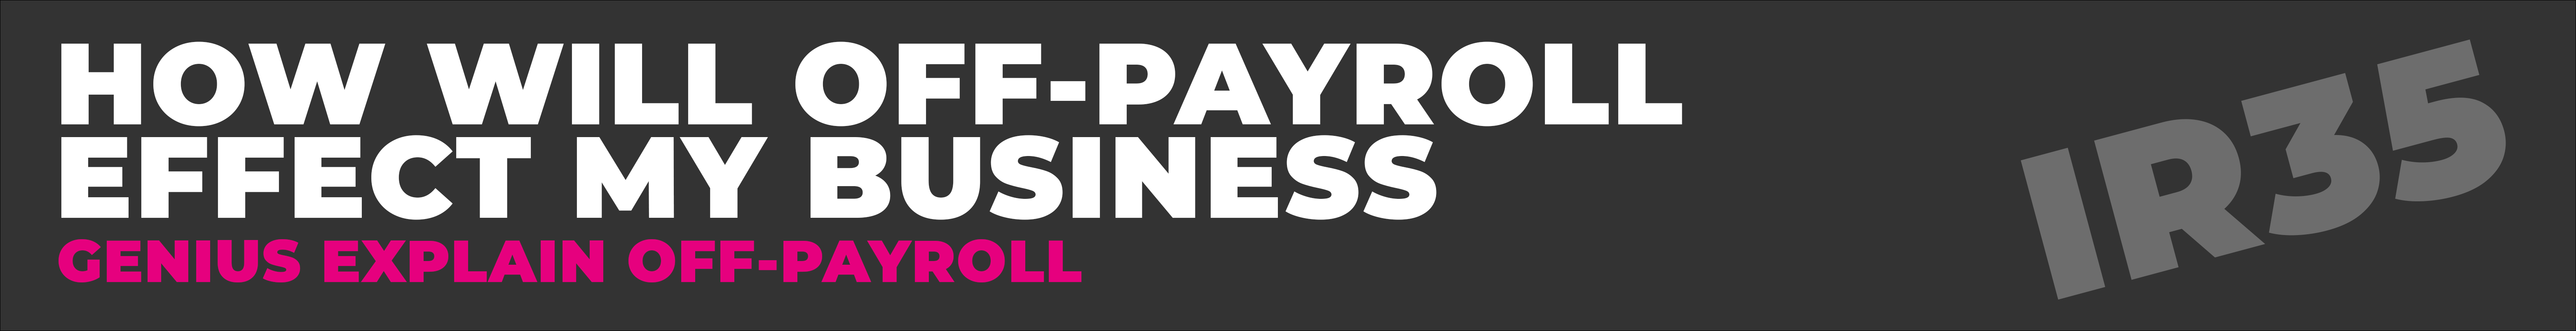 How Off-Payroll effects my business? Genius Explain